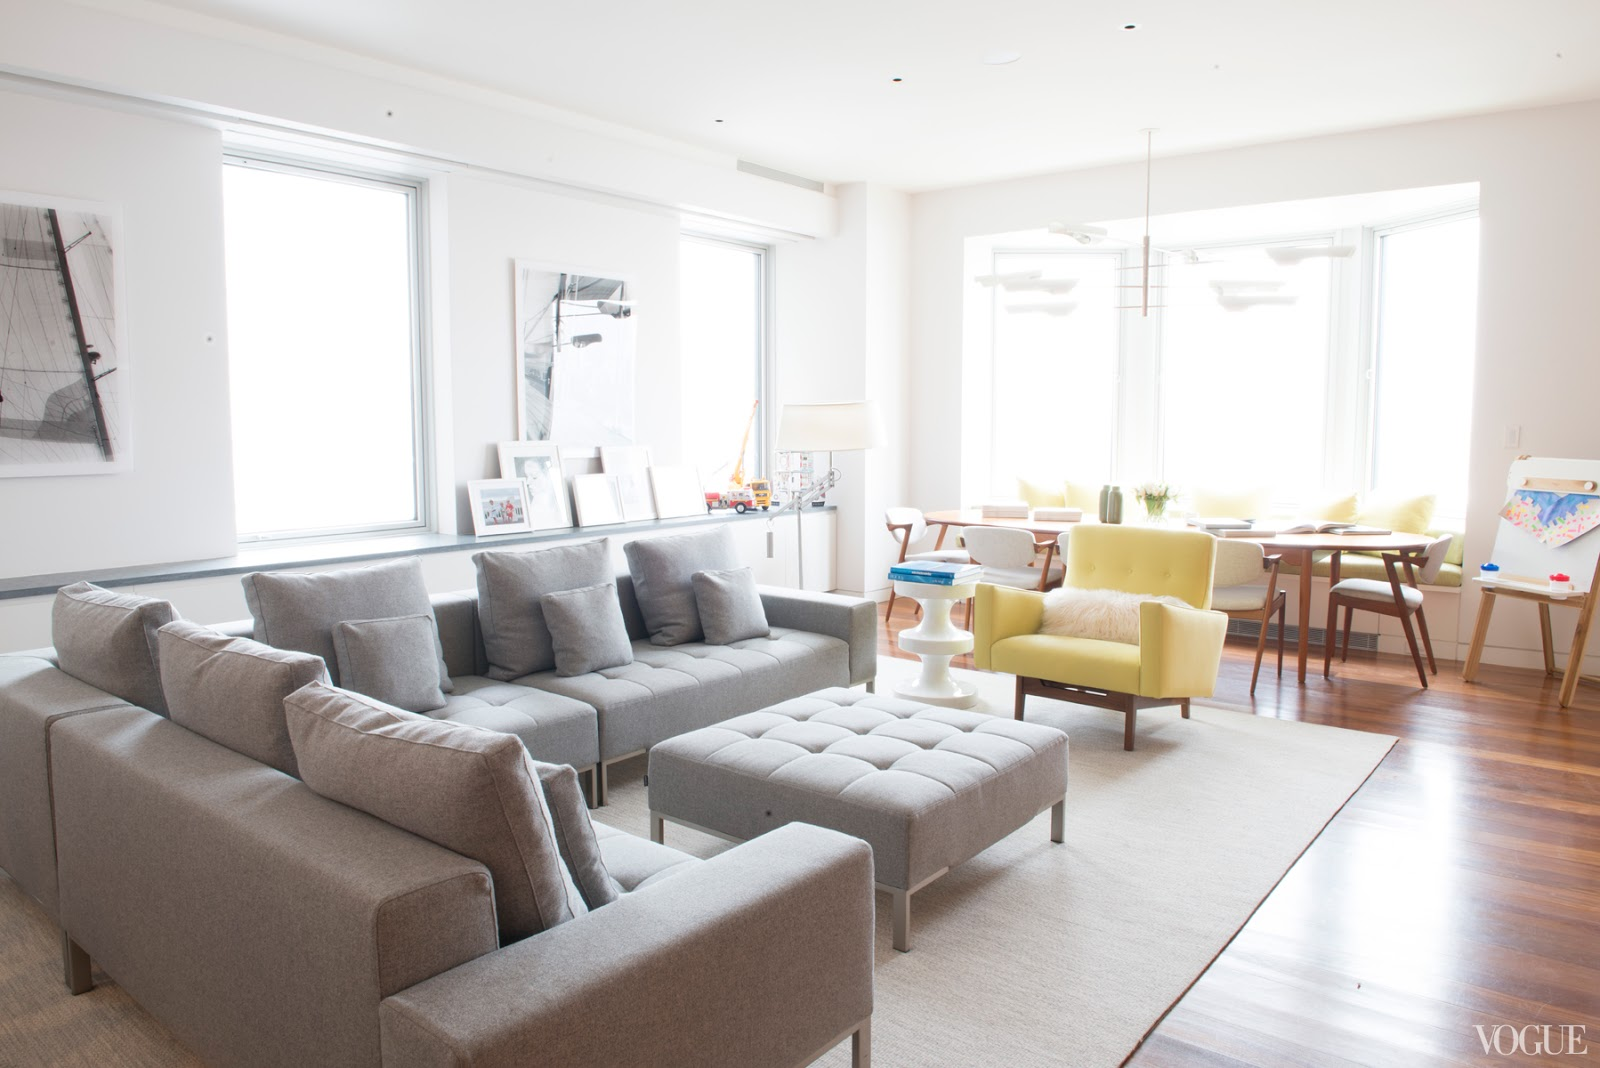 COCOCOZY: BEYOND NEUTRAL COLOR PALETTE - LIVING THE SERENE ...